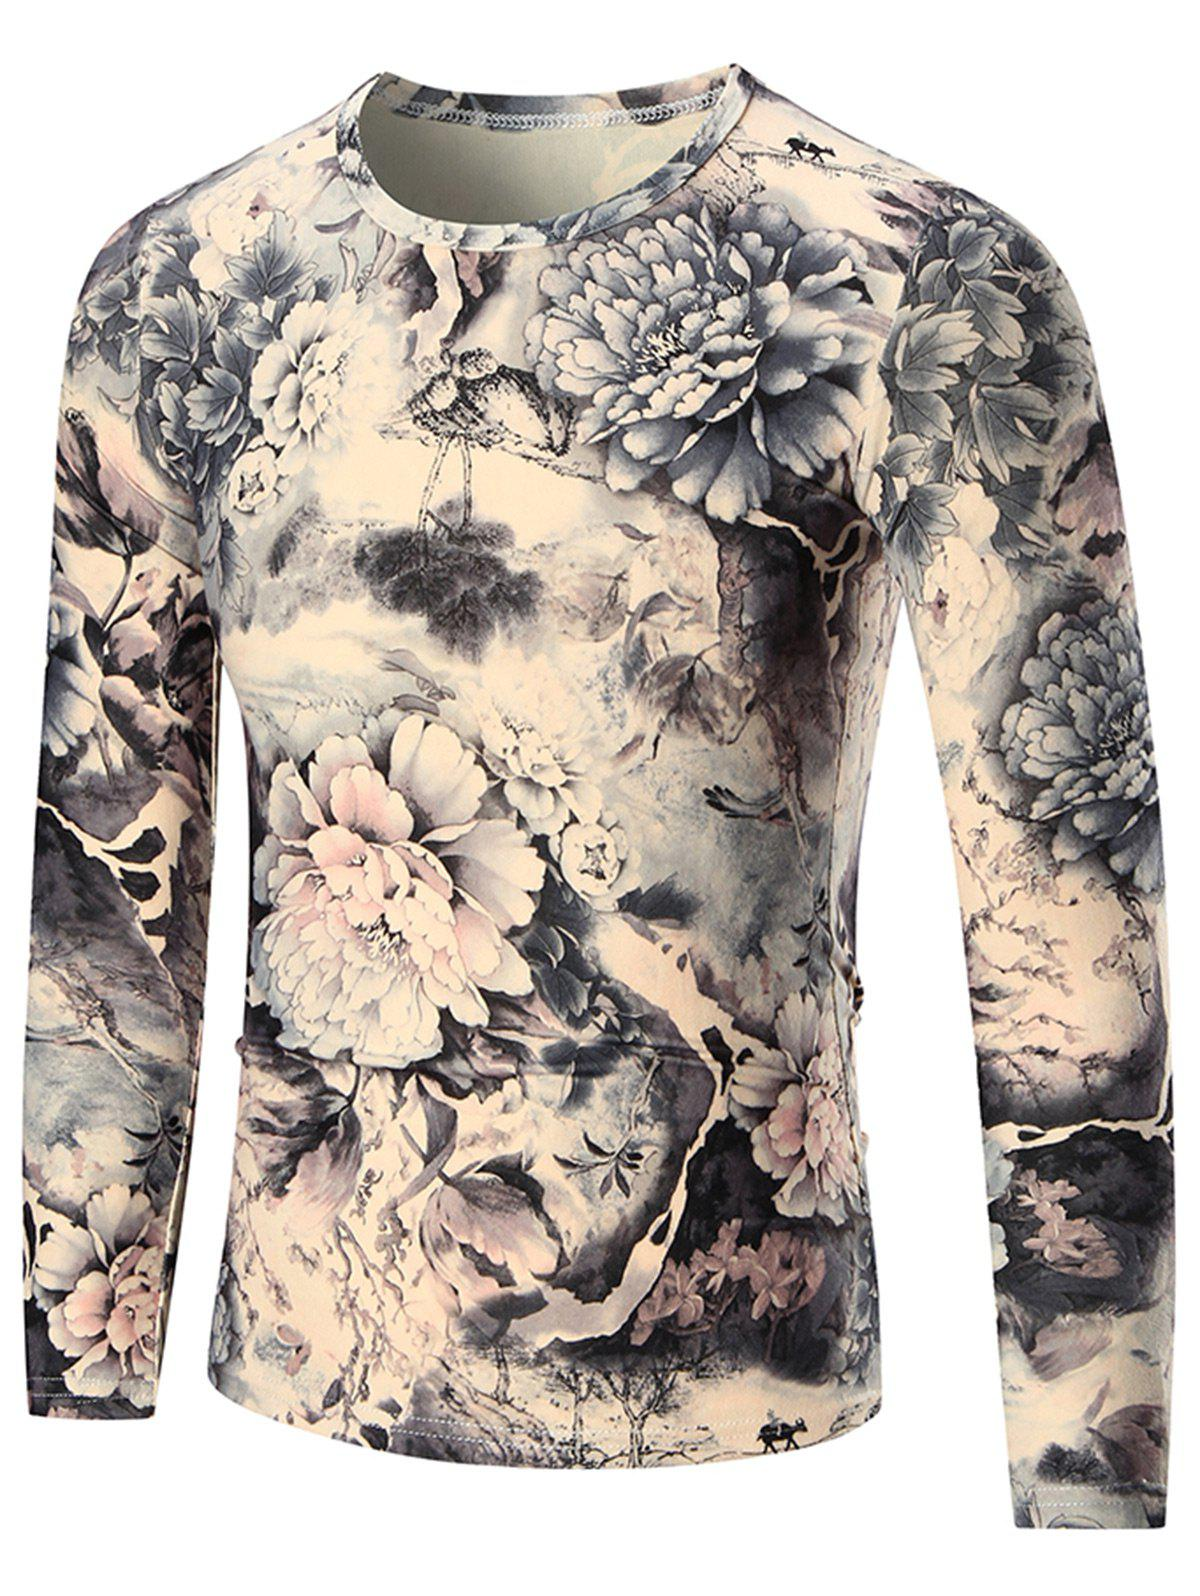 Peony Print Crewneck Long Sleeve T-shirt - COLORMIX 3XL